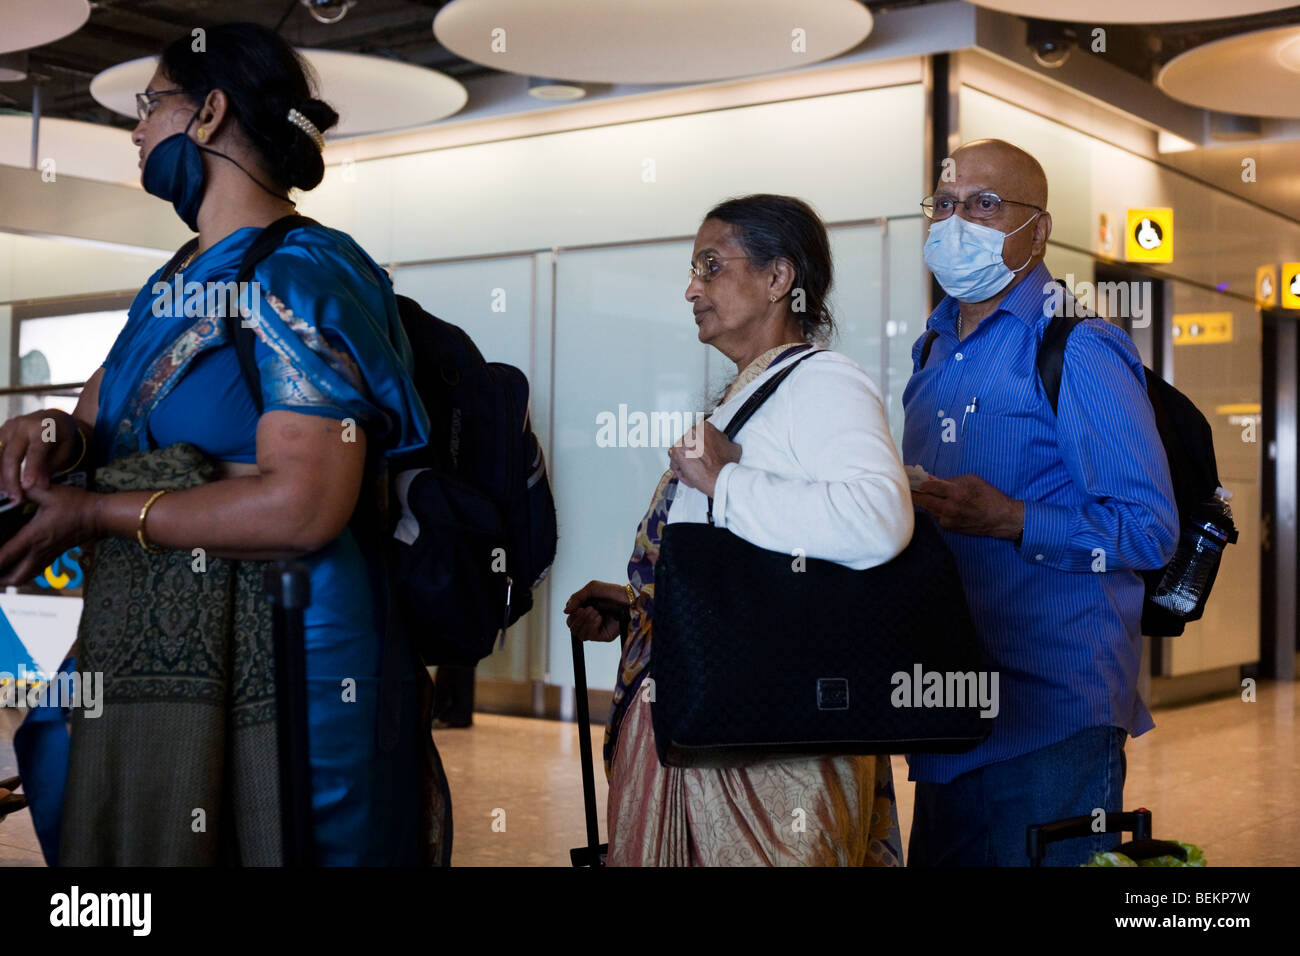 Airline passengers recently arrived from India wait in line at Heathrow Airport's Terminal 5 - Stock Image